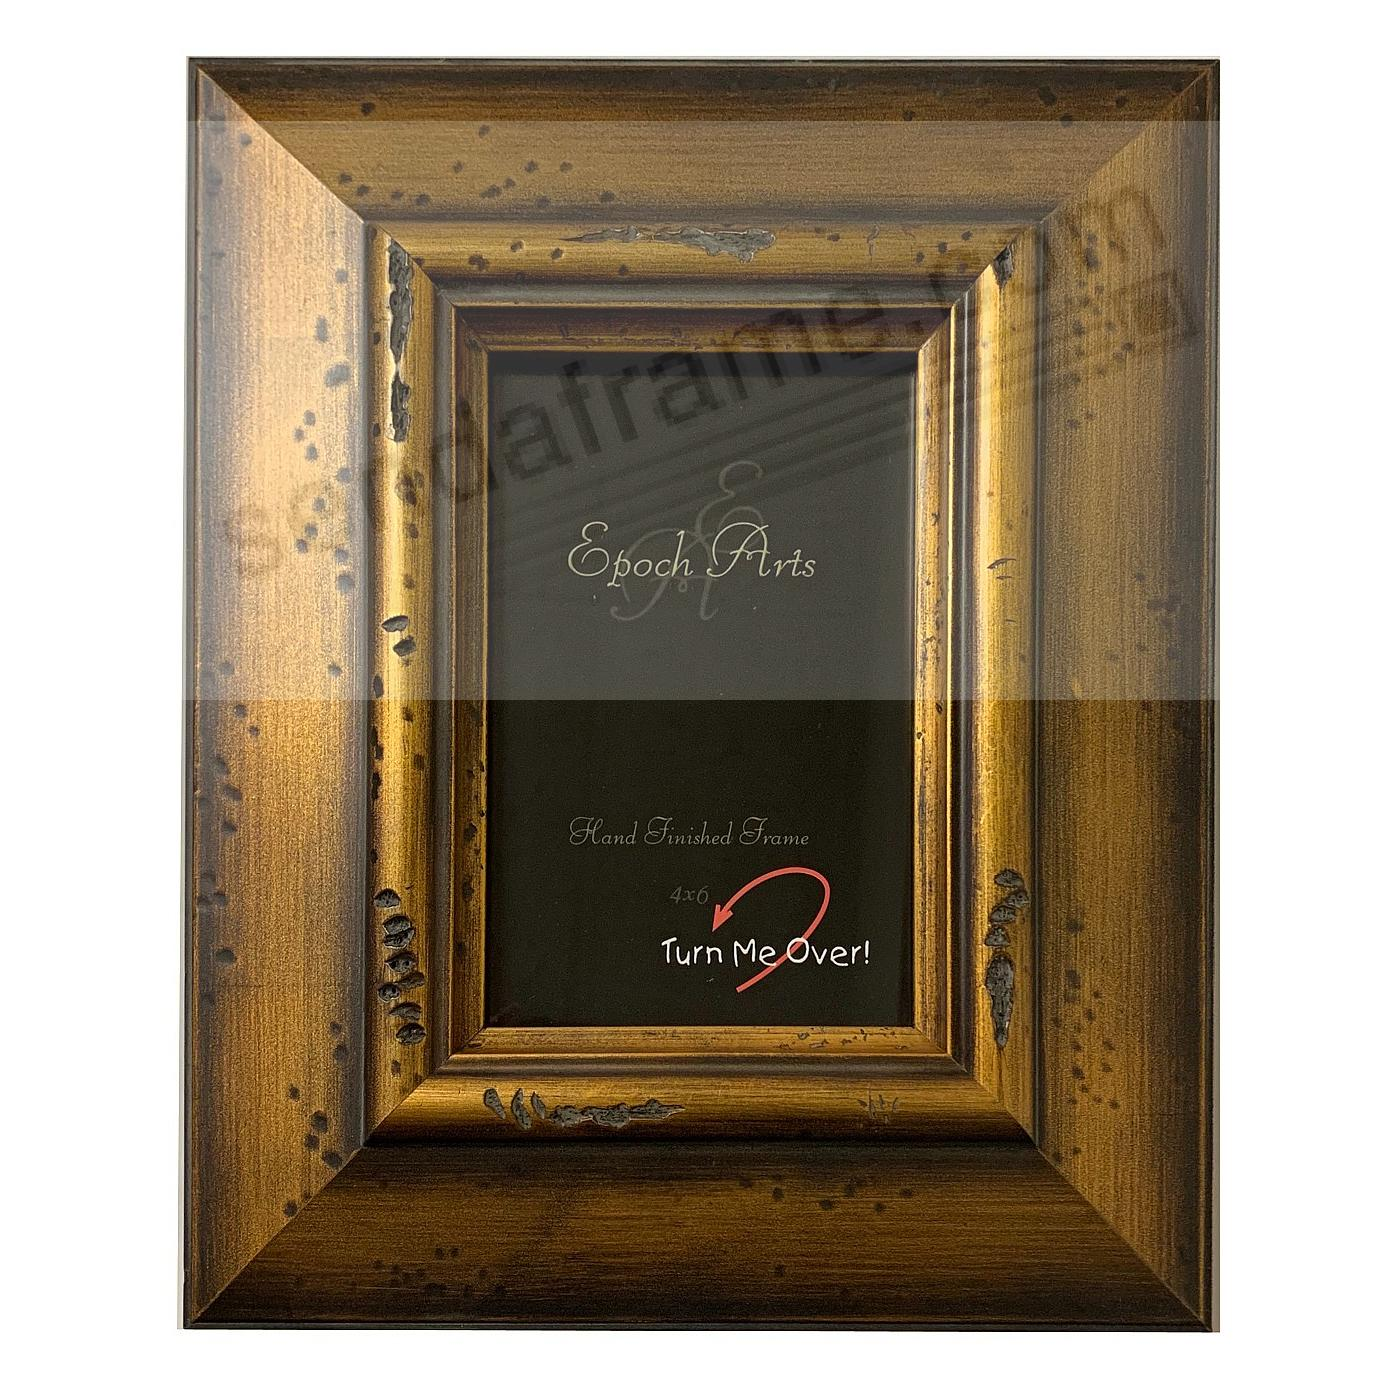 DISTRESSED GOLD 4x5 by Epoch Arts® - Picture Frames, Photo Albums ...